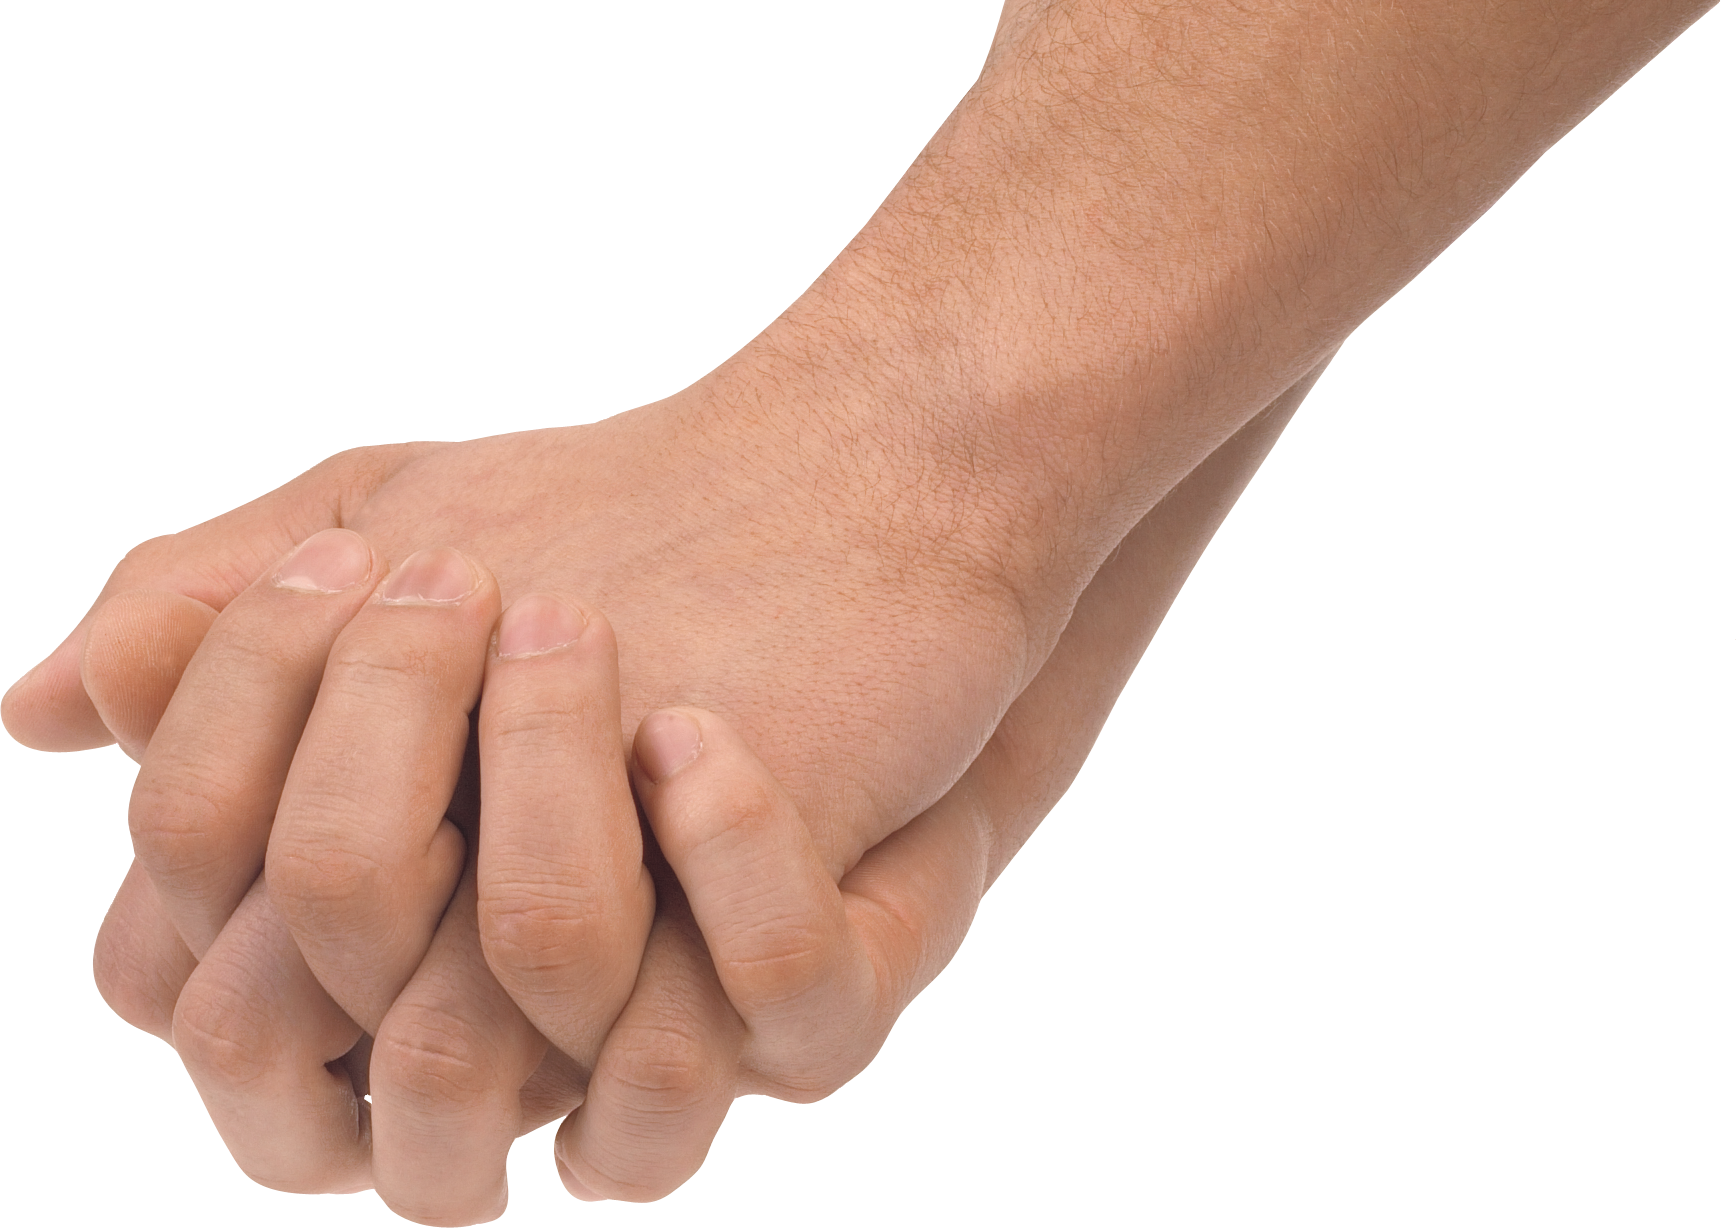 Hands Png Image Body Reference Hands Hand Images